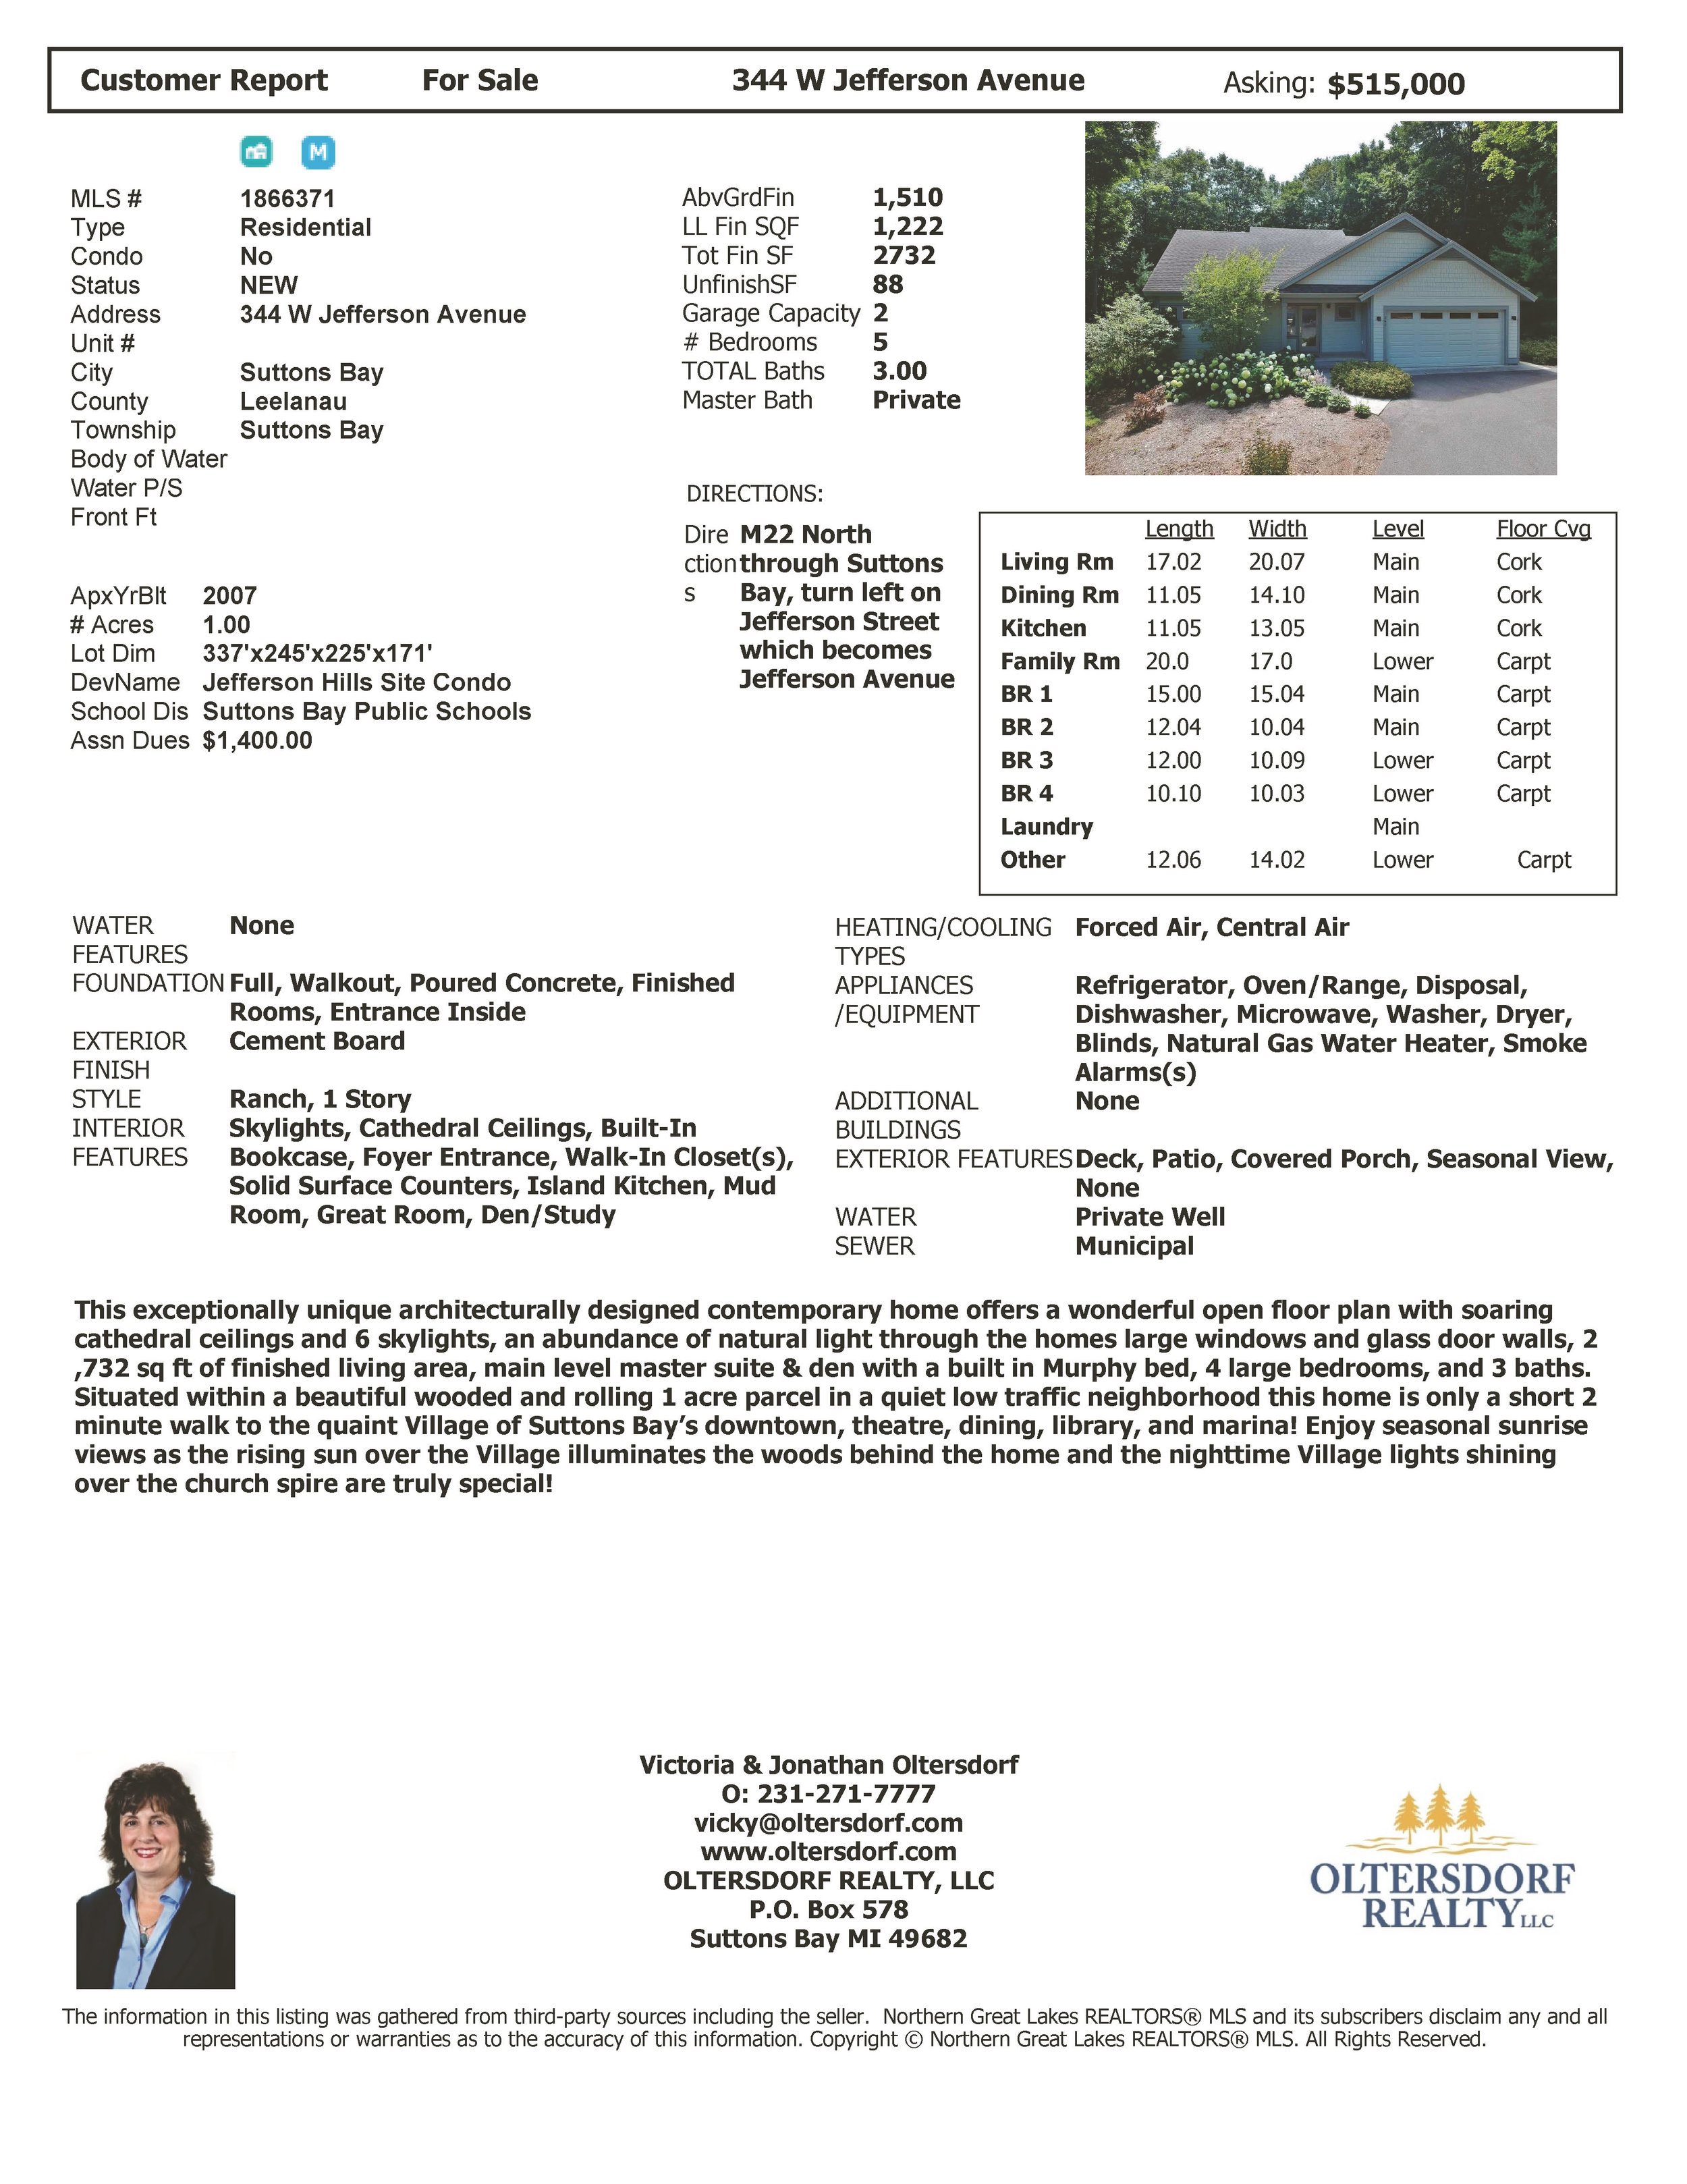 344 W Jefferson Ave Marketing Packet - For Sale by Oltersdorf Realty LLC (9).jpg